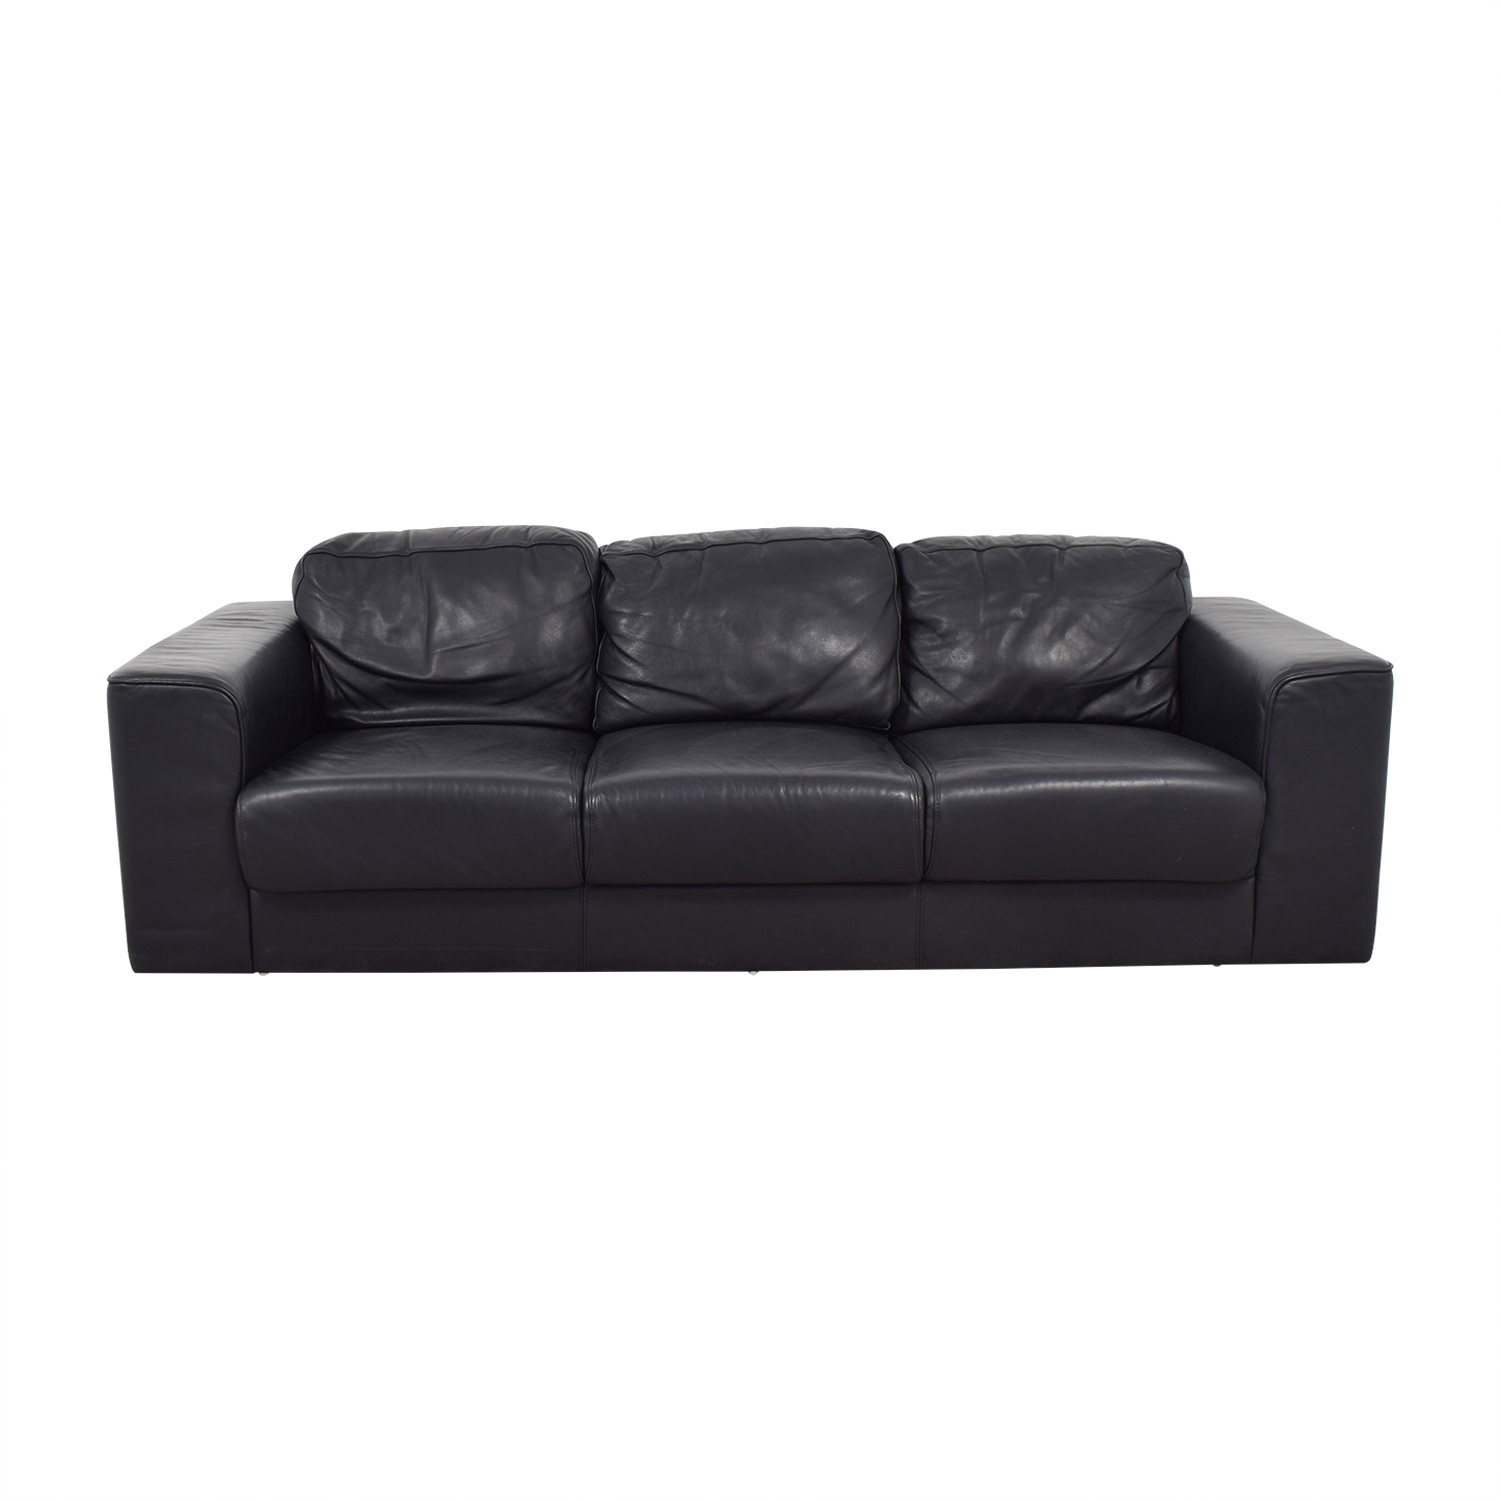 Black Leather Three-Cushion Sofa second hand